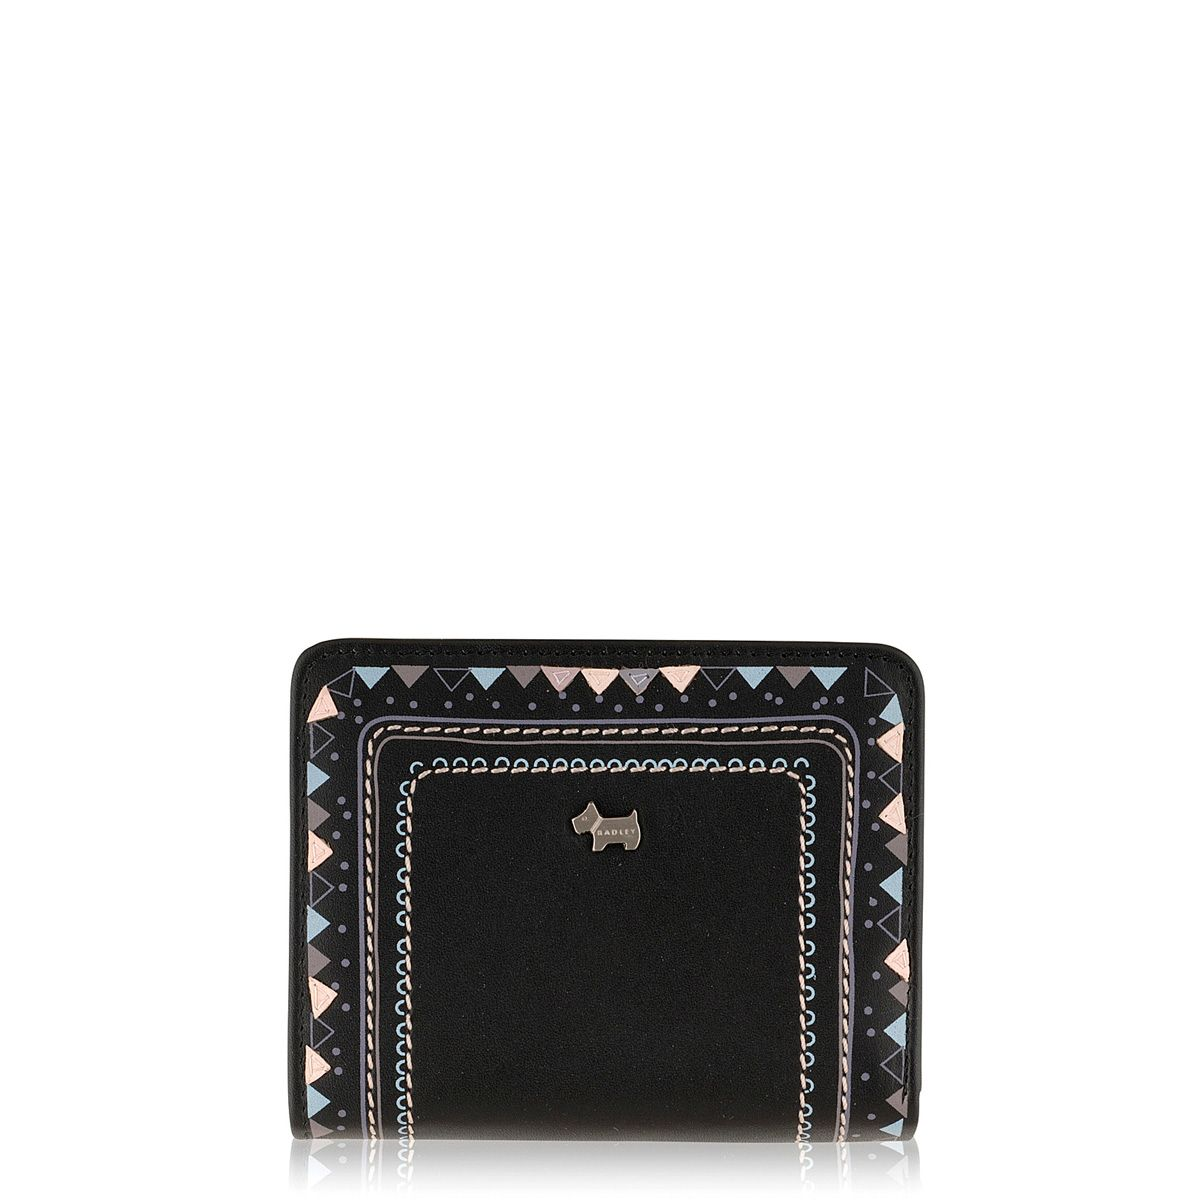 Black medium flapover purse